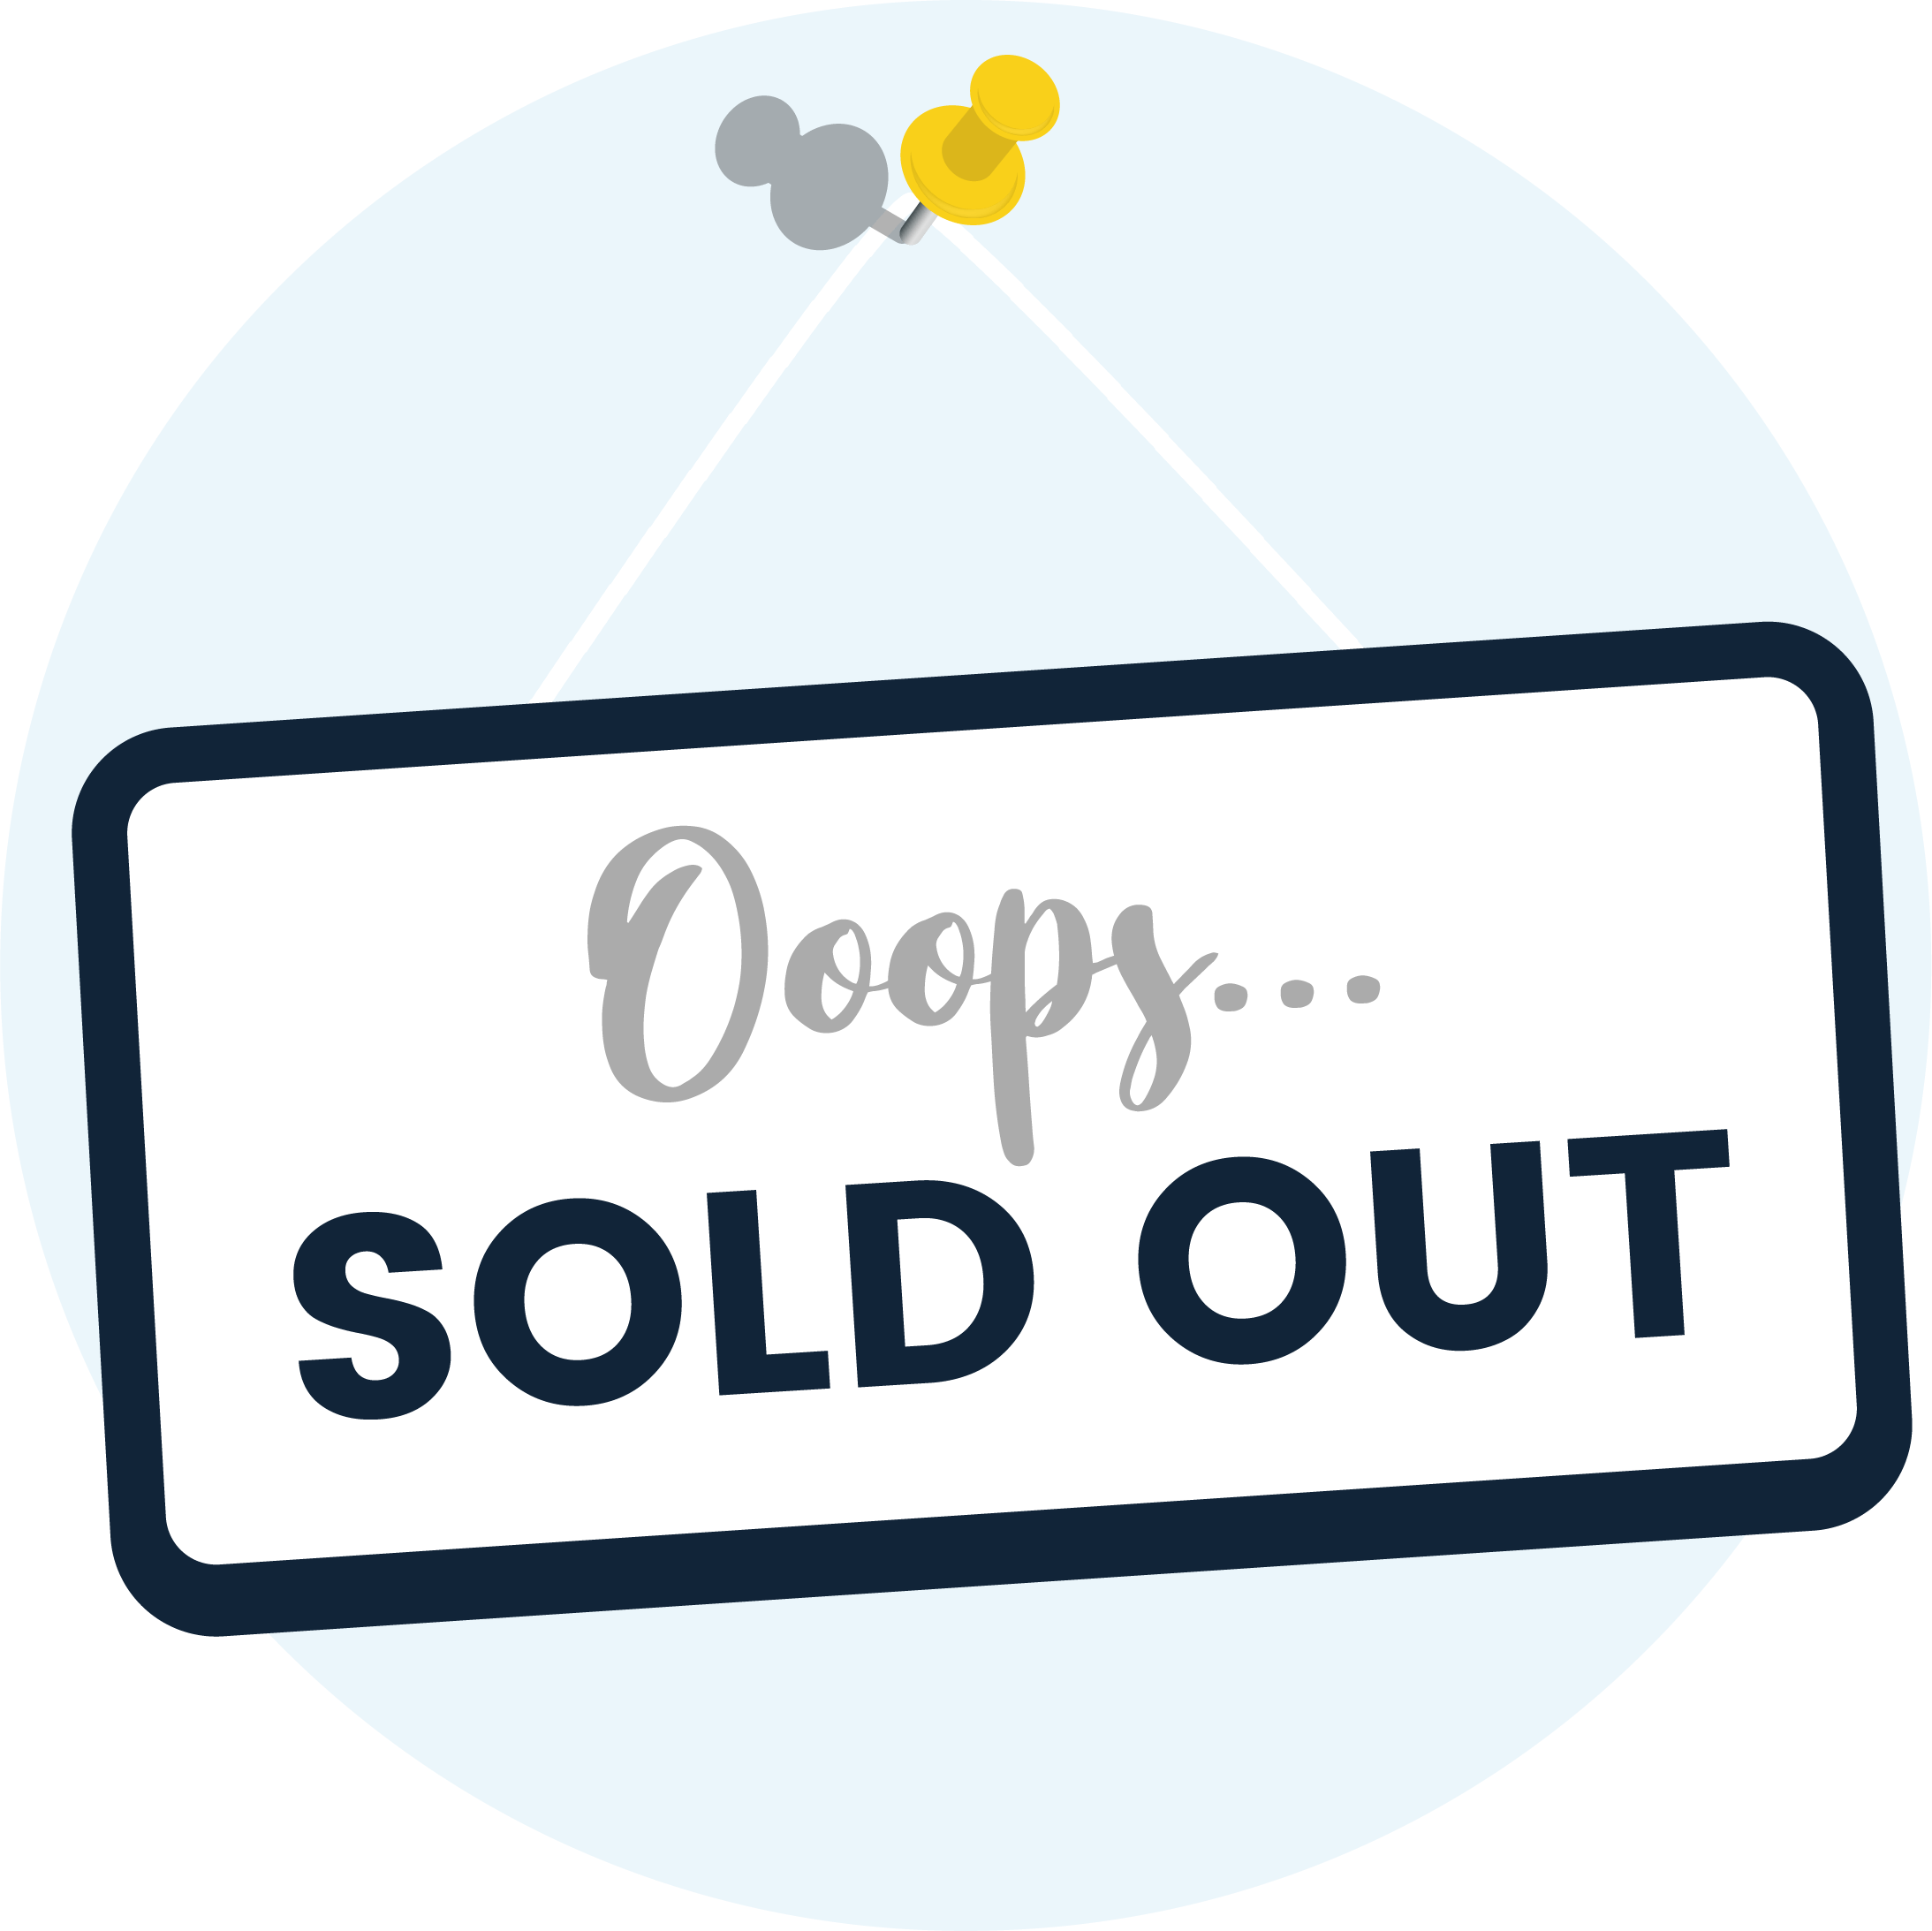 Sold-out - We have already rented all the short term rentals London.